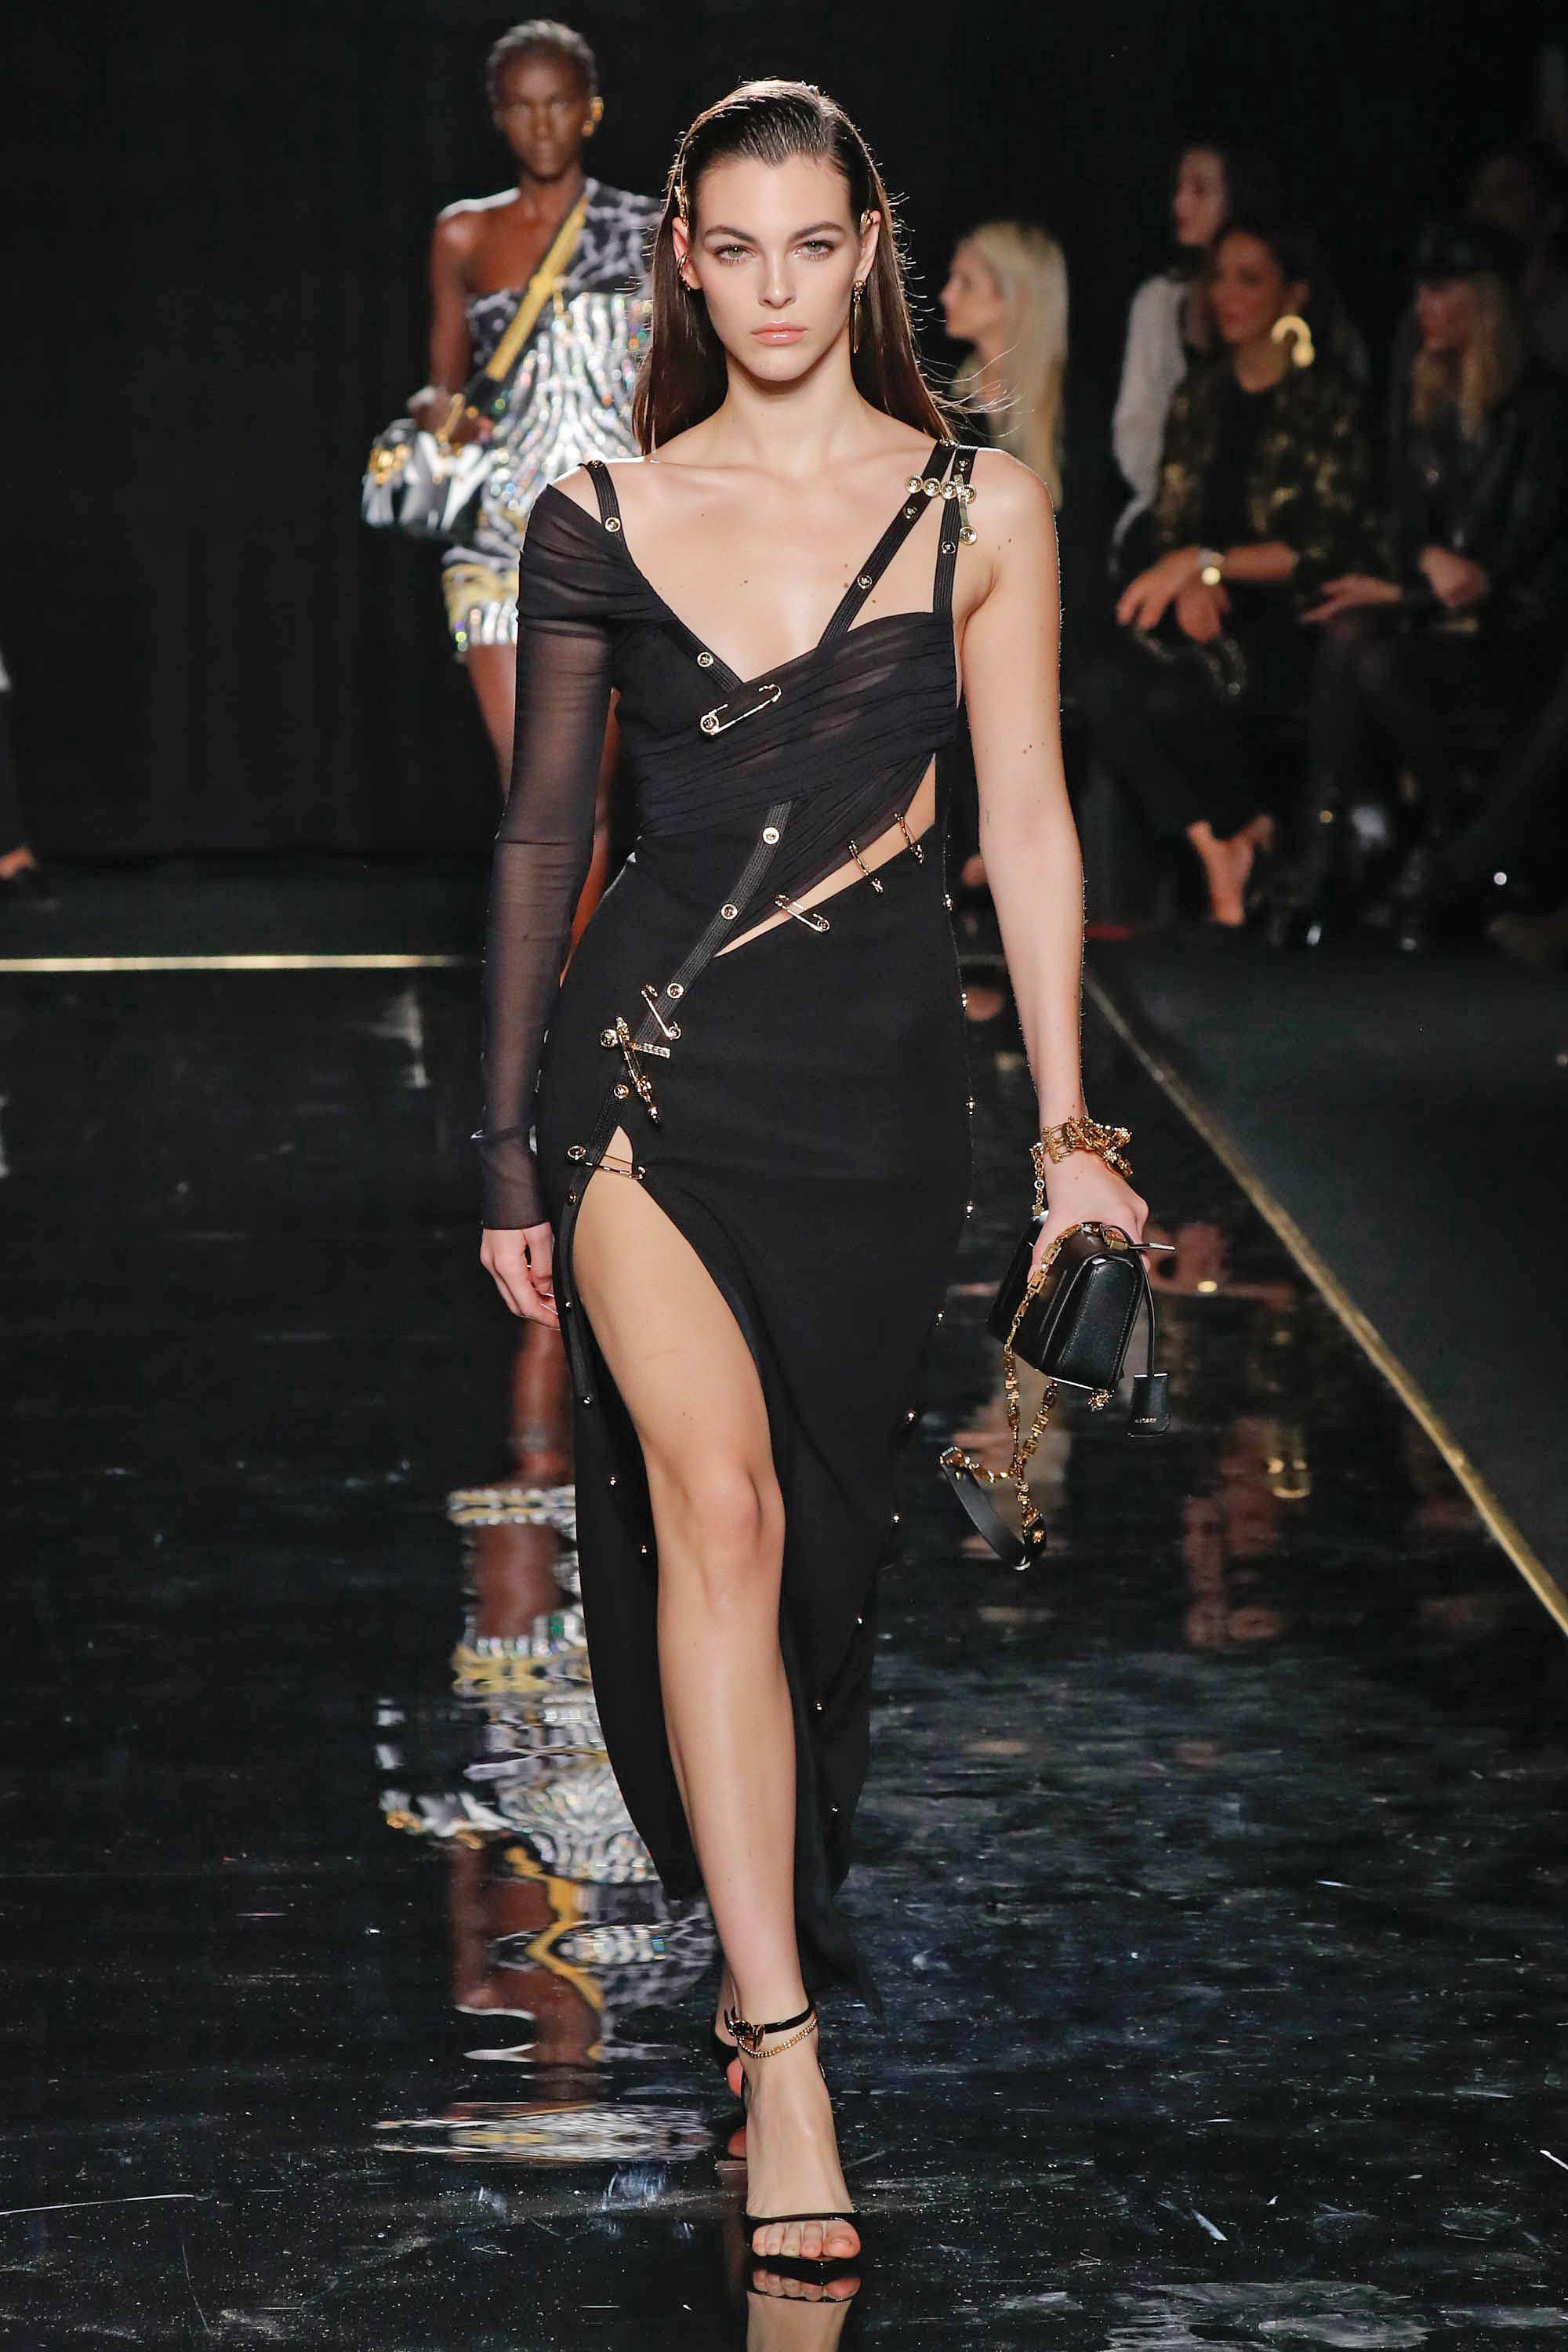 Versace is pinning its hopes on an old hit. On Sunday, the Italian label reincarnated the famous safety-pin gown of 1994, worn by then fairly unknown starlet Elizabeth Hurley, who was accompanying her then boyfriend, British actor Hugh Grant, to a pr